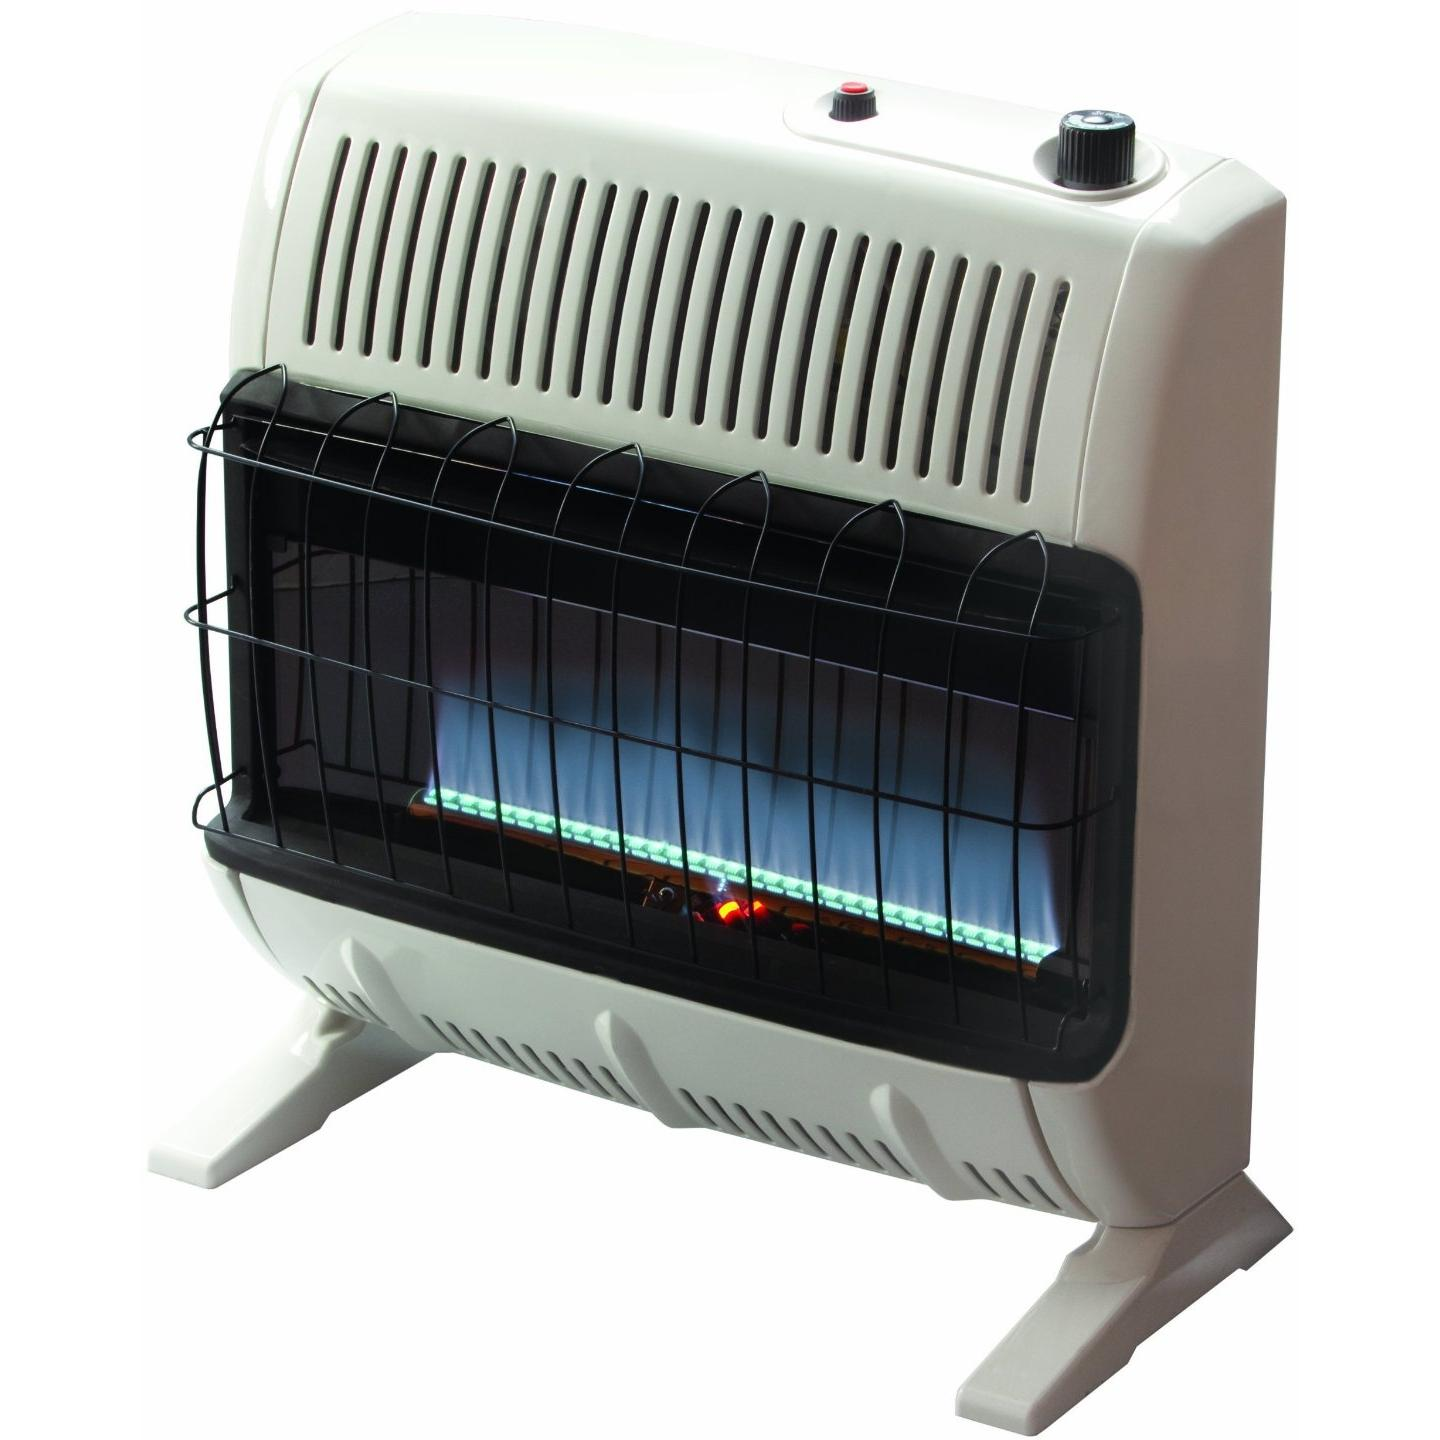 Heatstar 30,000 Btu Blue Flame Vent Free Propane Gas Space Heater at Sears.com